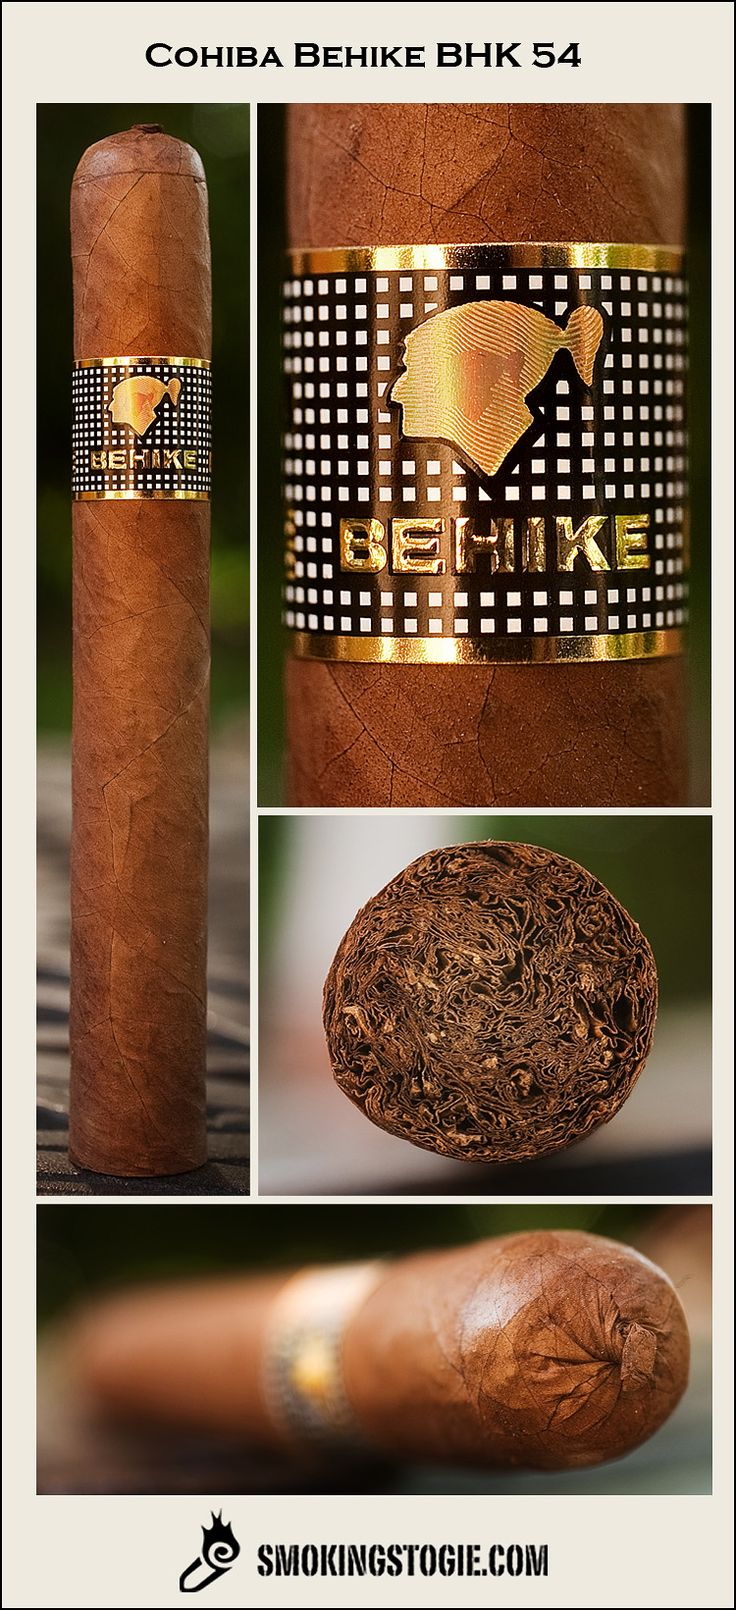 COHIBA BEHIKE BHK54 location Cuba  Bold- notes of coffee beans, with an earthy core leading to a leathery smoke